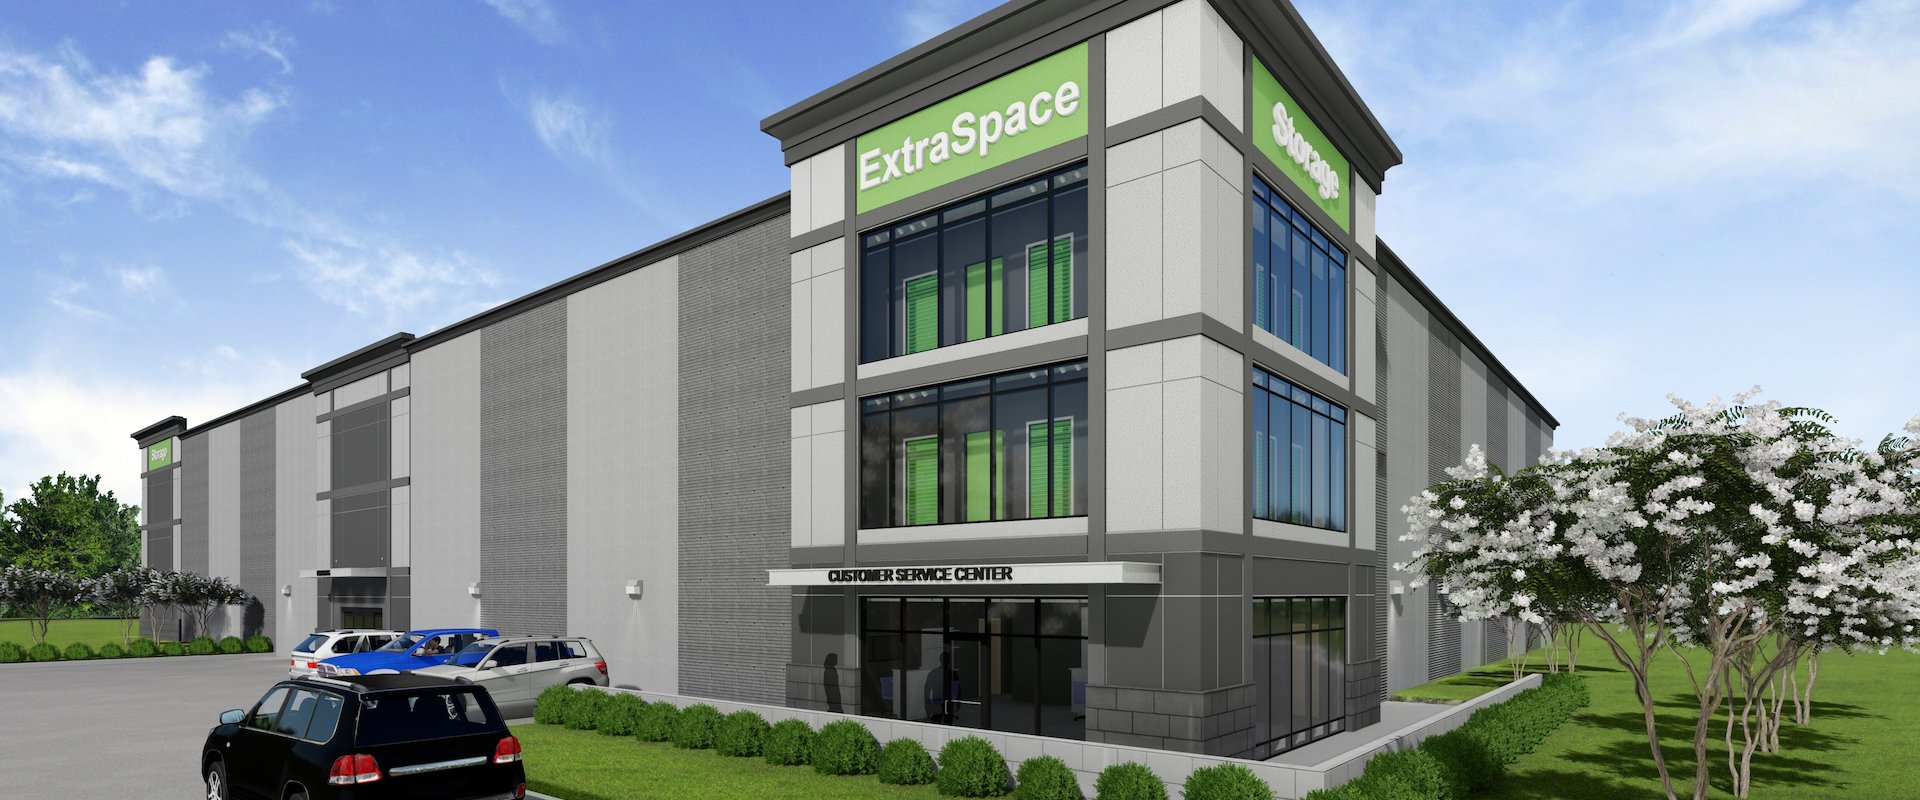 Extra Space Storage - Spartanburg